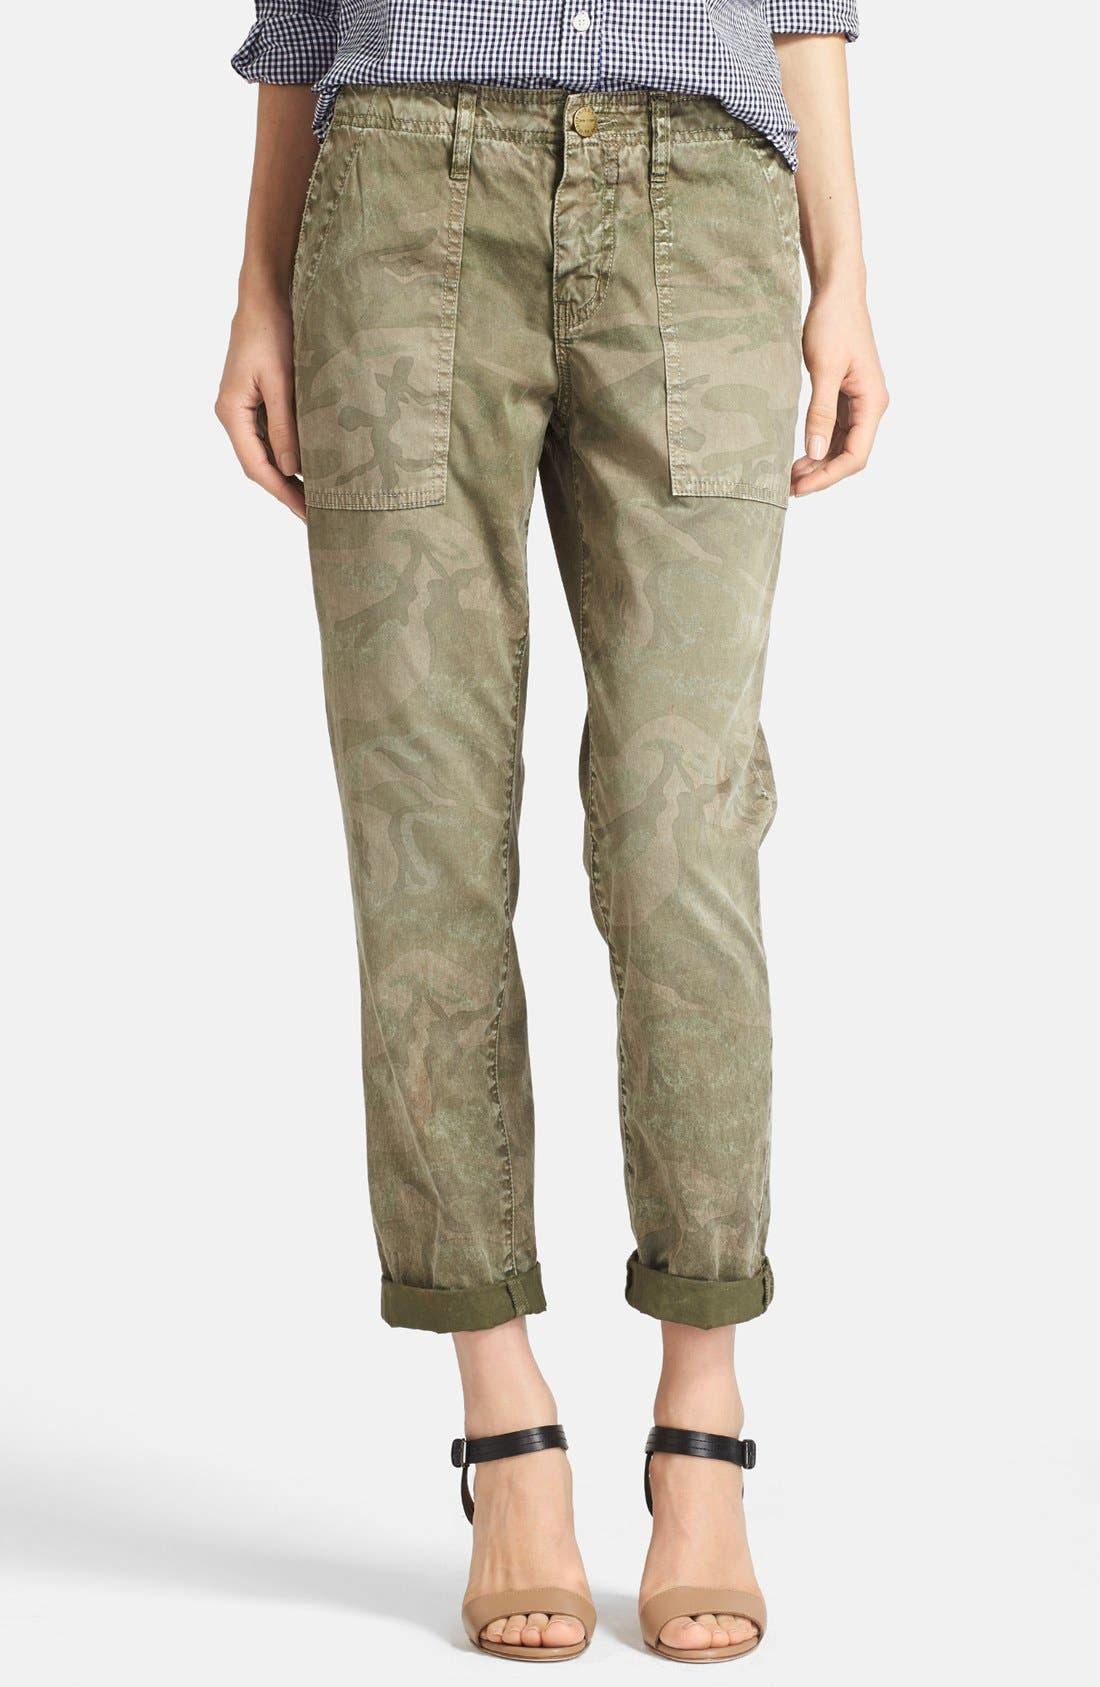 Alternate Image 1 Selected - Current/Elliott 'The Army Buddy' Jeans (Army Camo)